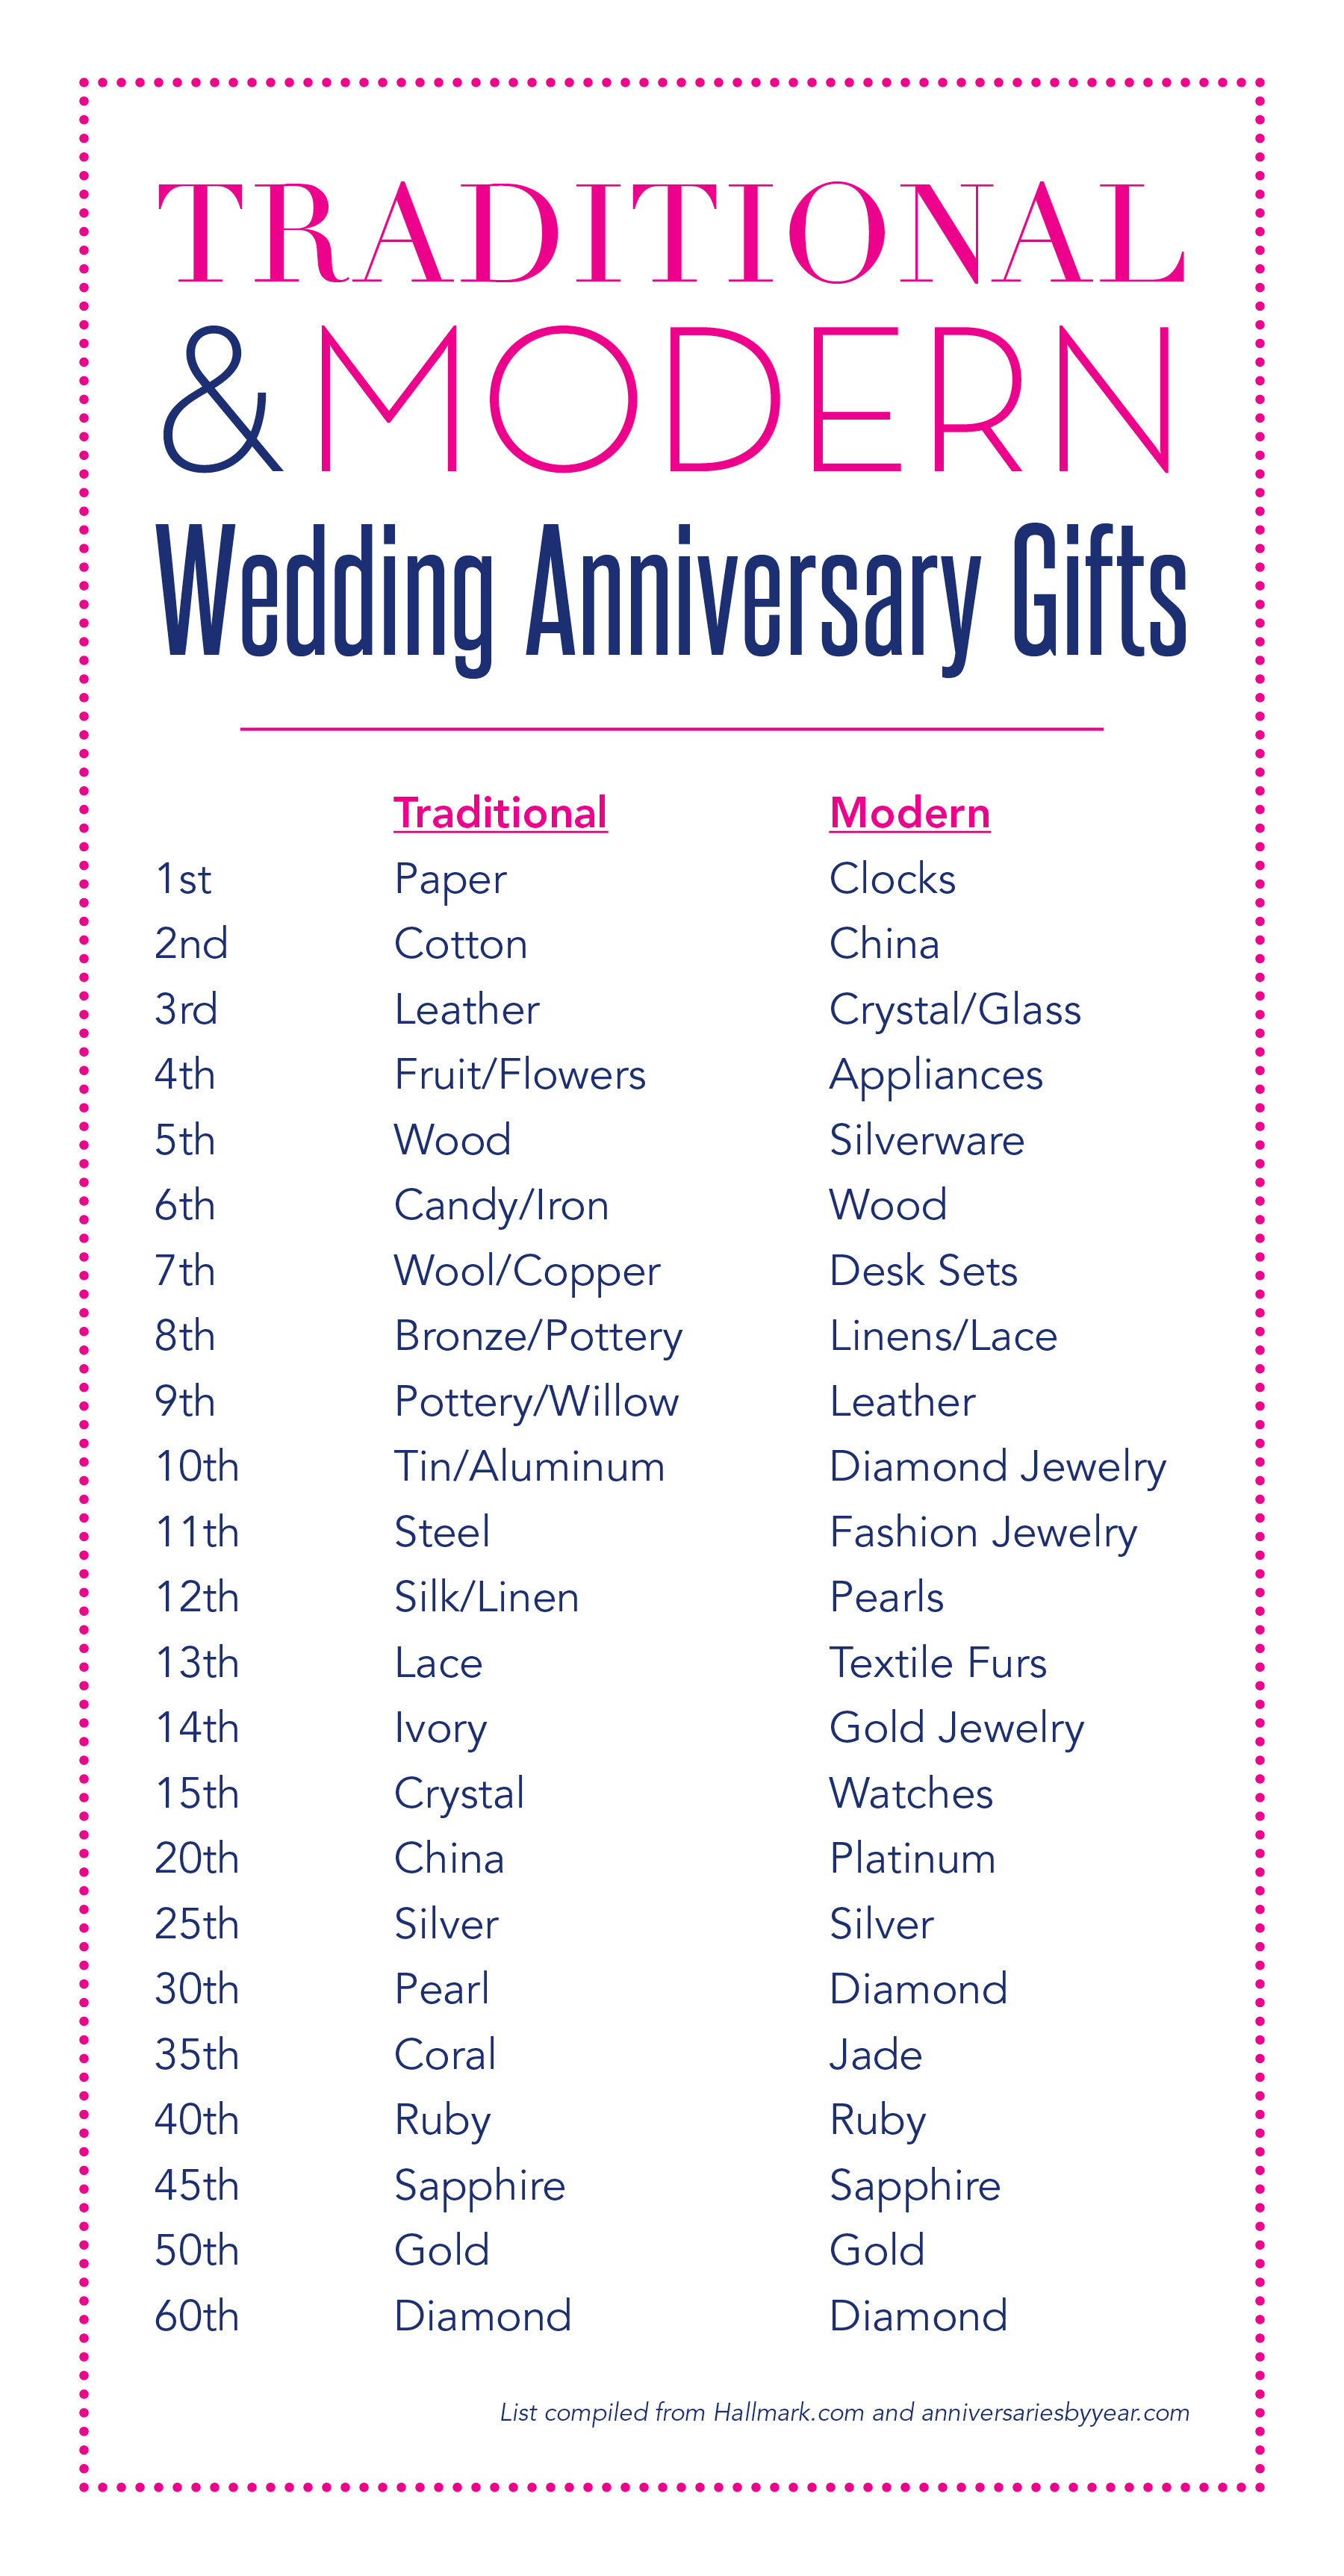 Customary Wedding Gift Dollar Amount : wedding anniversary gifts (traditional & modern)